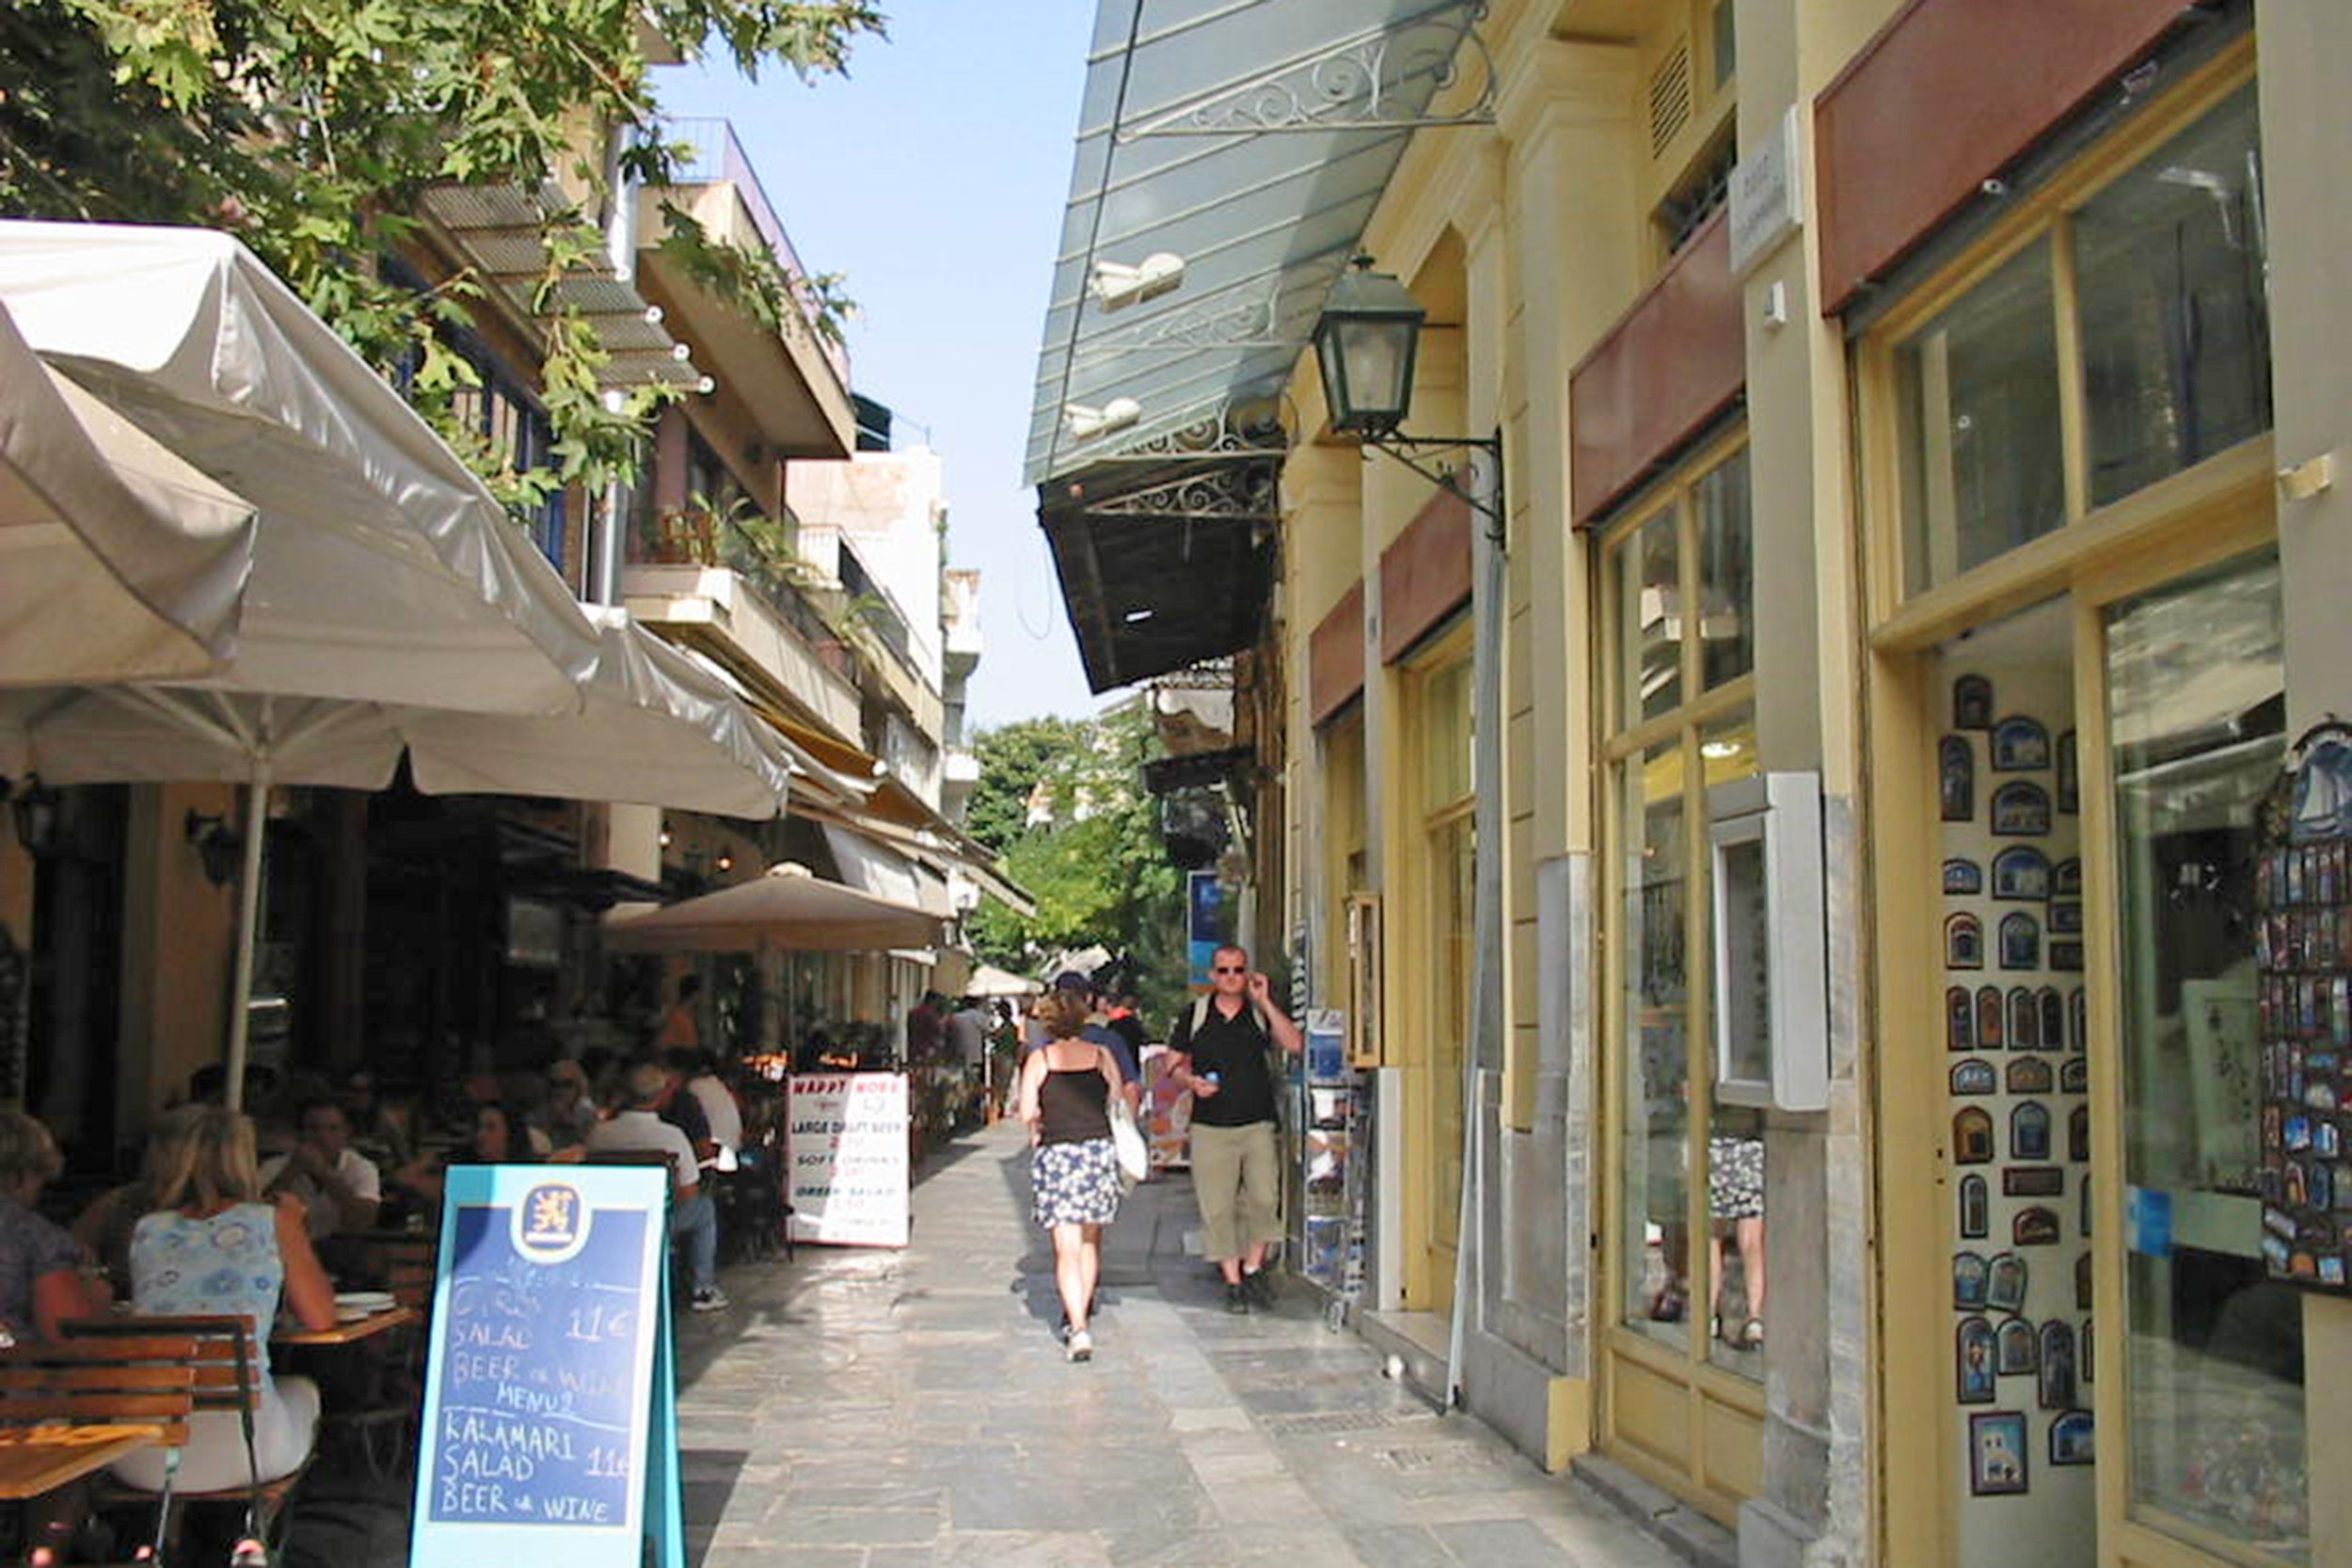 Figs 11 and 12: Acquired non-spaces on footpaths for paid outdoor dining